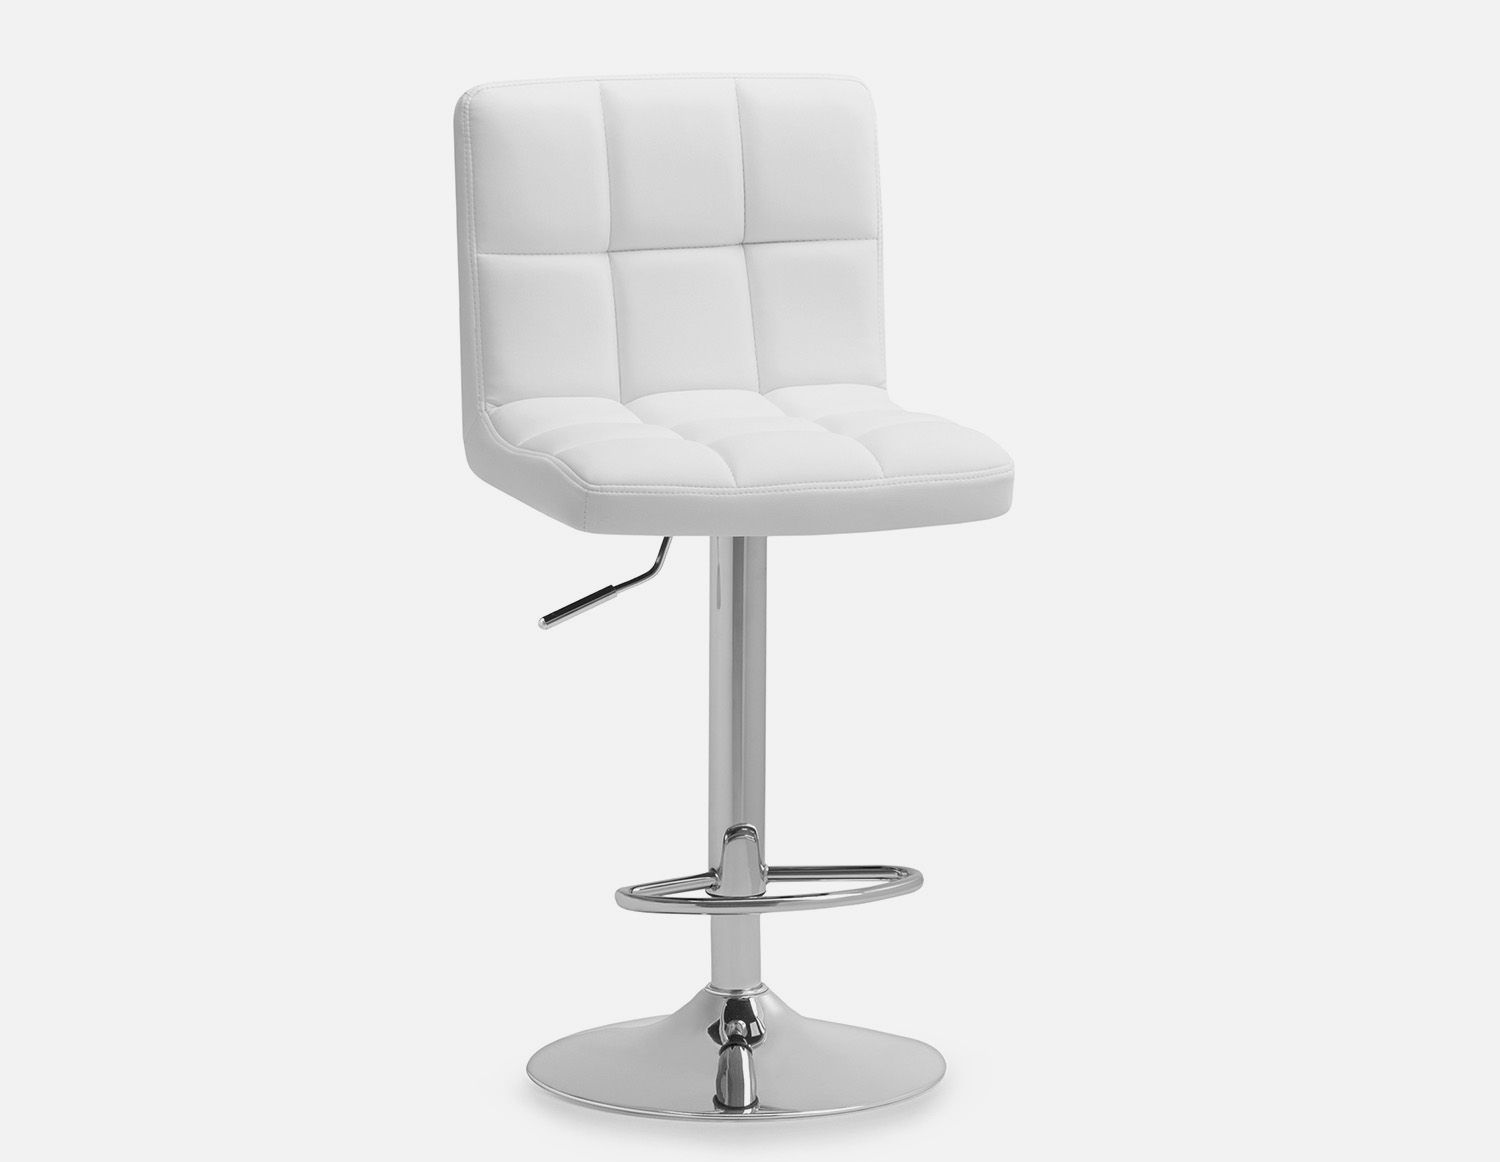 White Adjustable Upholstered Stool 94cm To 114cm 37 To 45 Structube Ava Adjustable Stool Upholstered Stool Cool Bar Stools